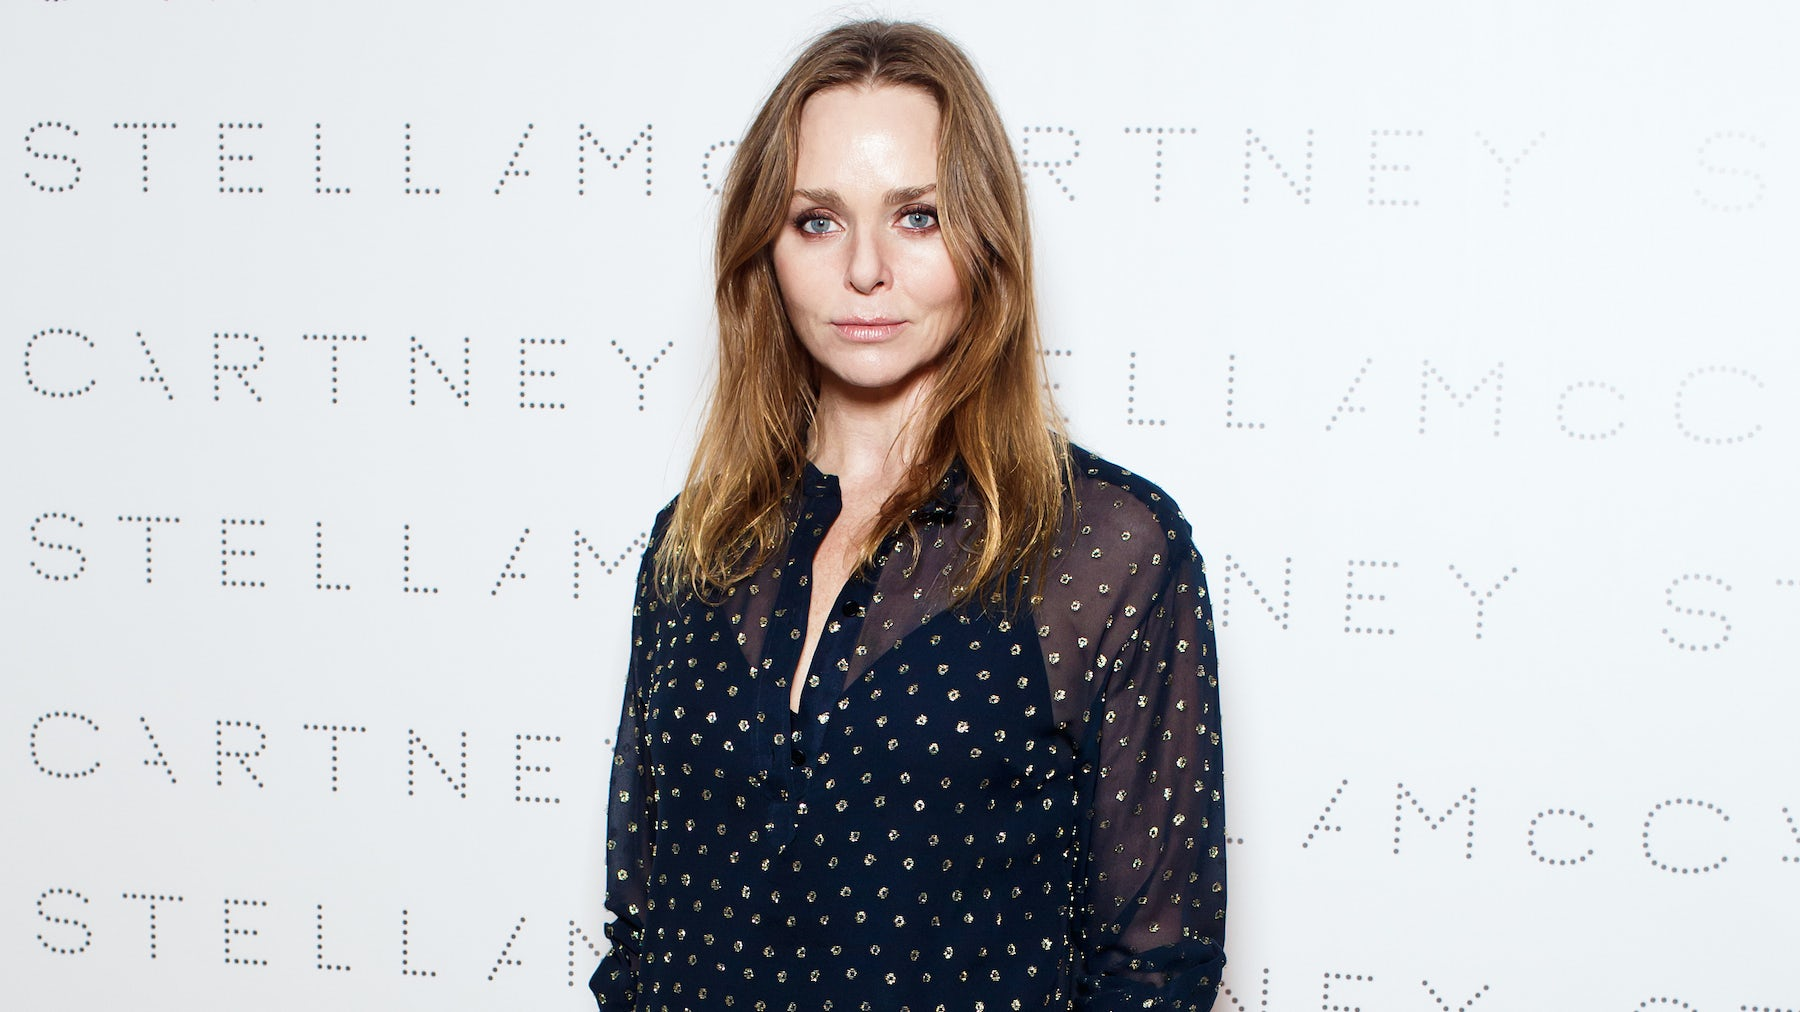 Stella McCartney Calls on Fashion to Adopt Cleaner Production